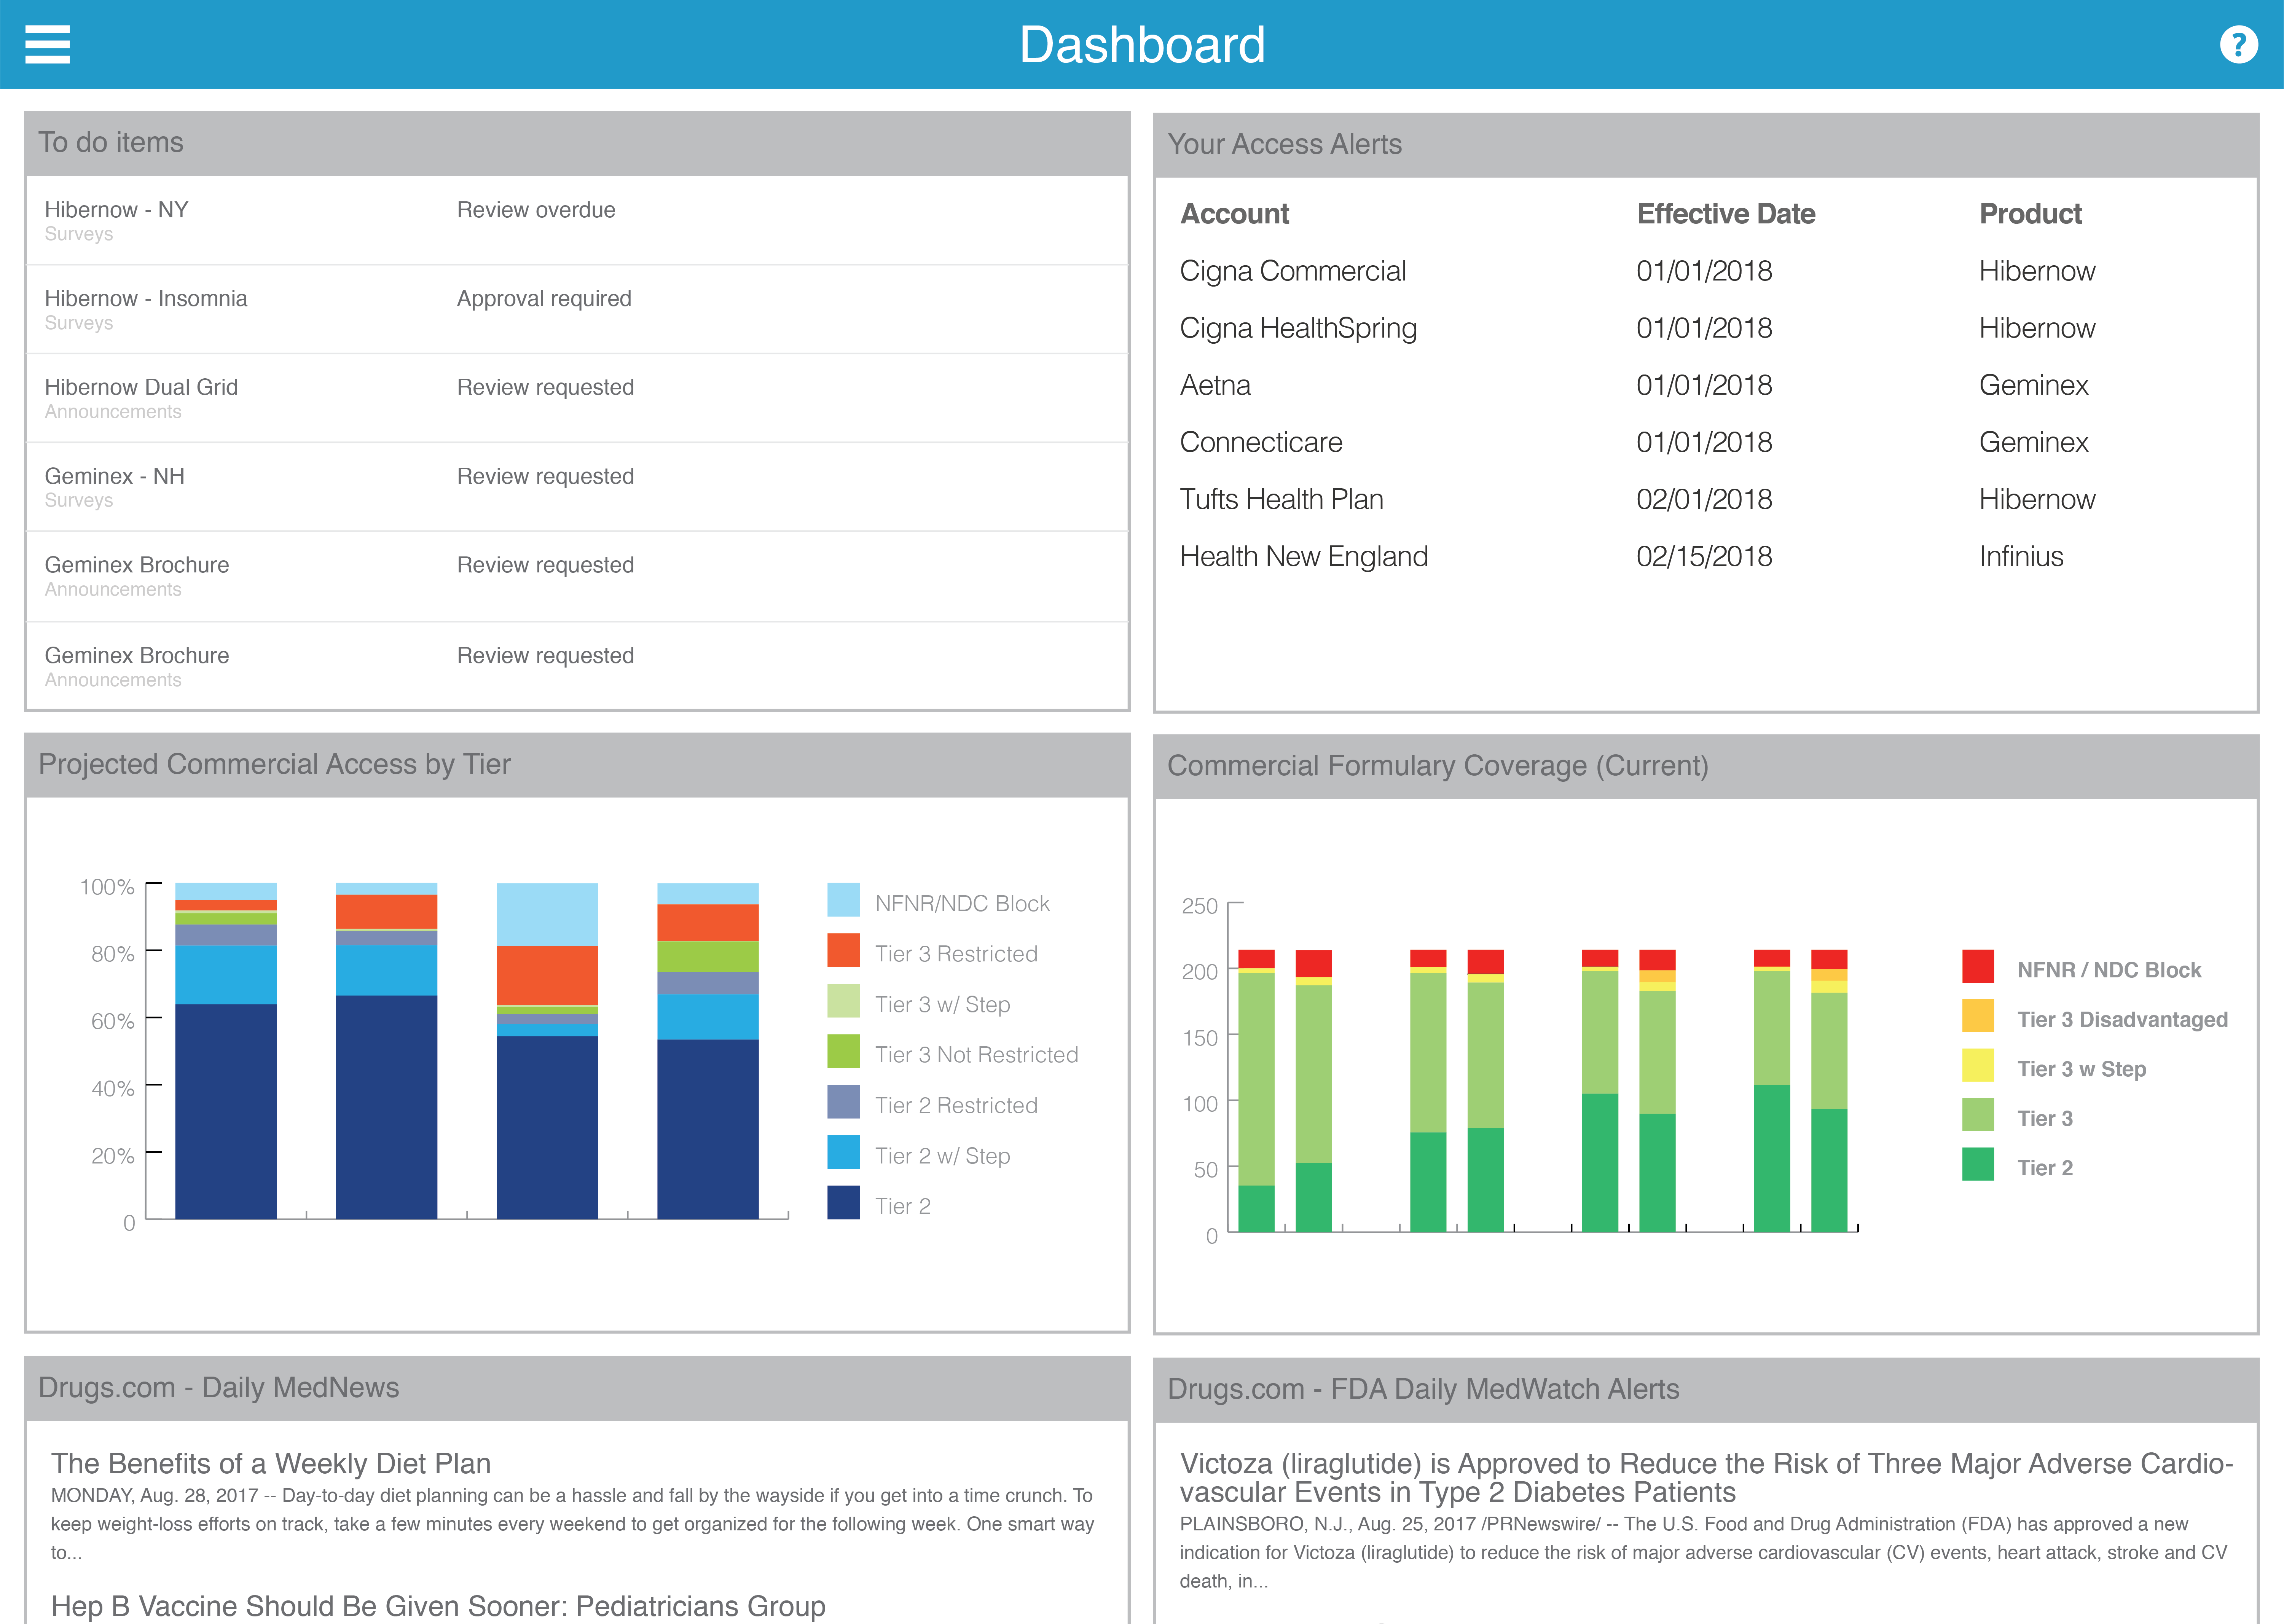 dashboards-mockup-updated-01.png